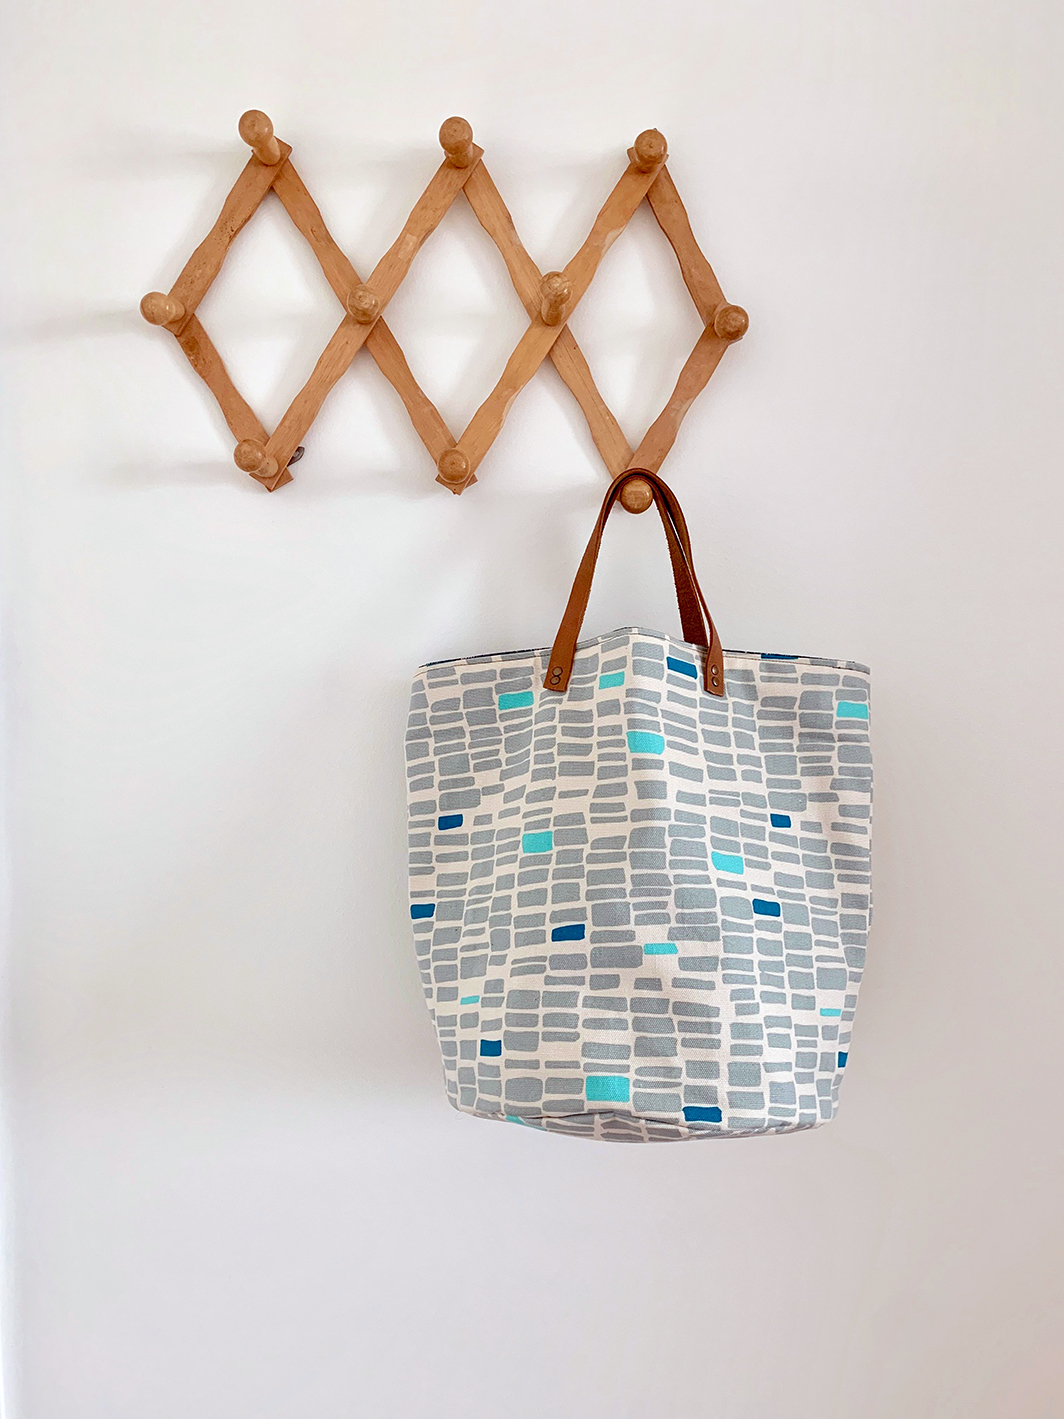 Soft Storage Bucket from That Handmade Touch by Svetlana Sotak